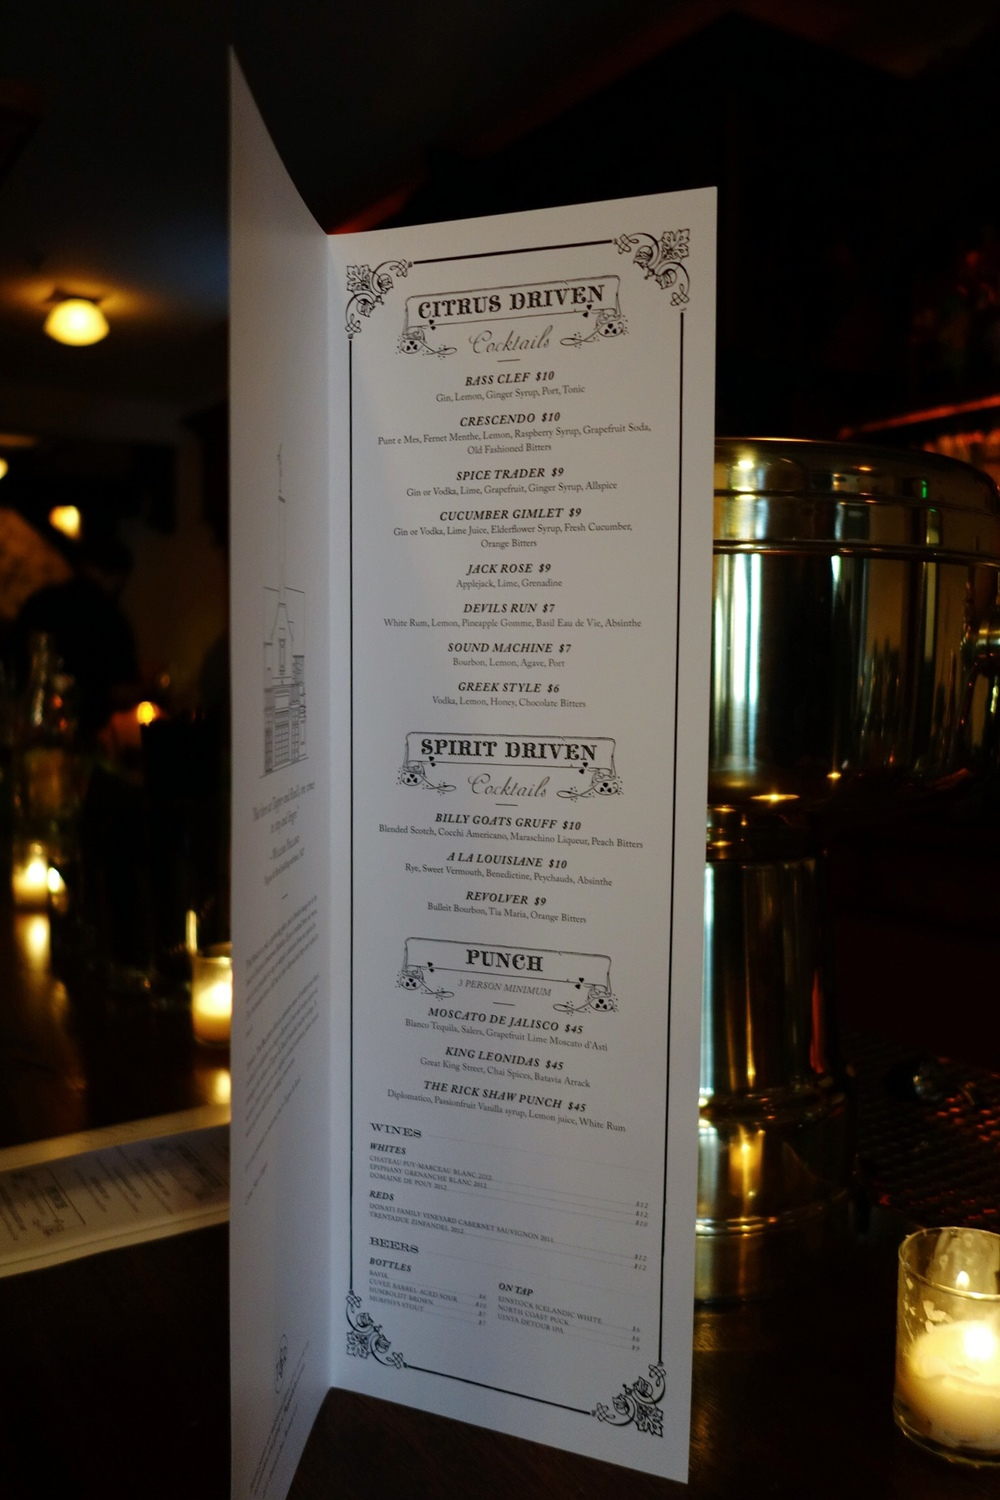 Tupper & Reed Menu - Berkeley | Bites & Bourbon